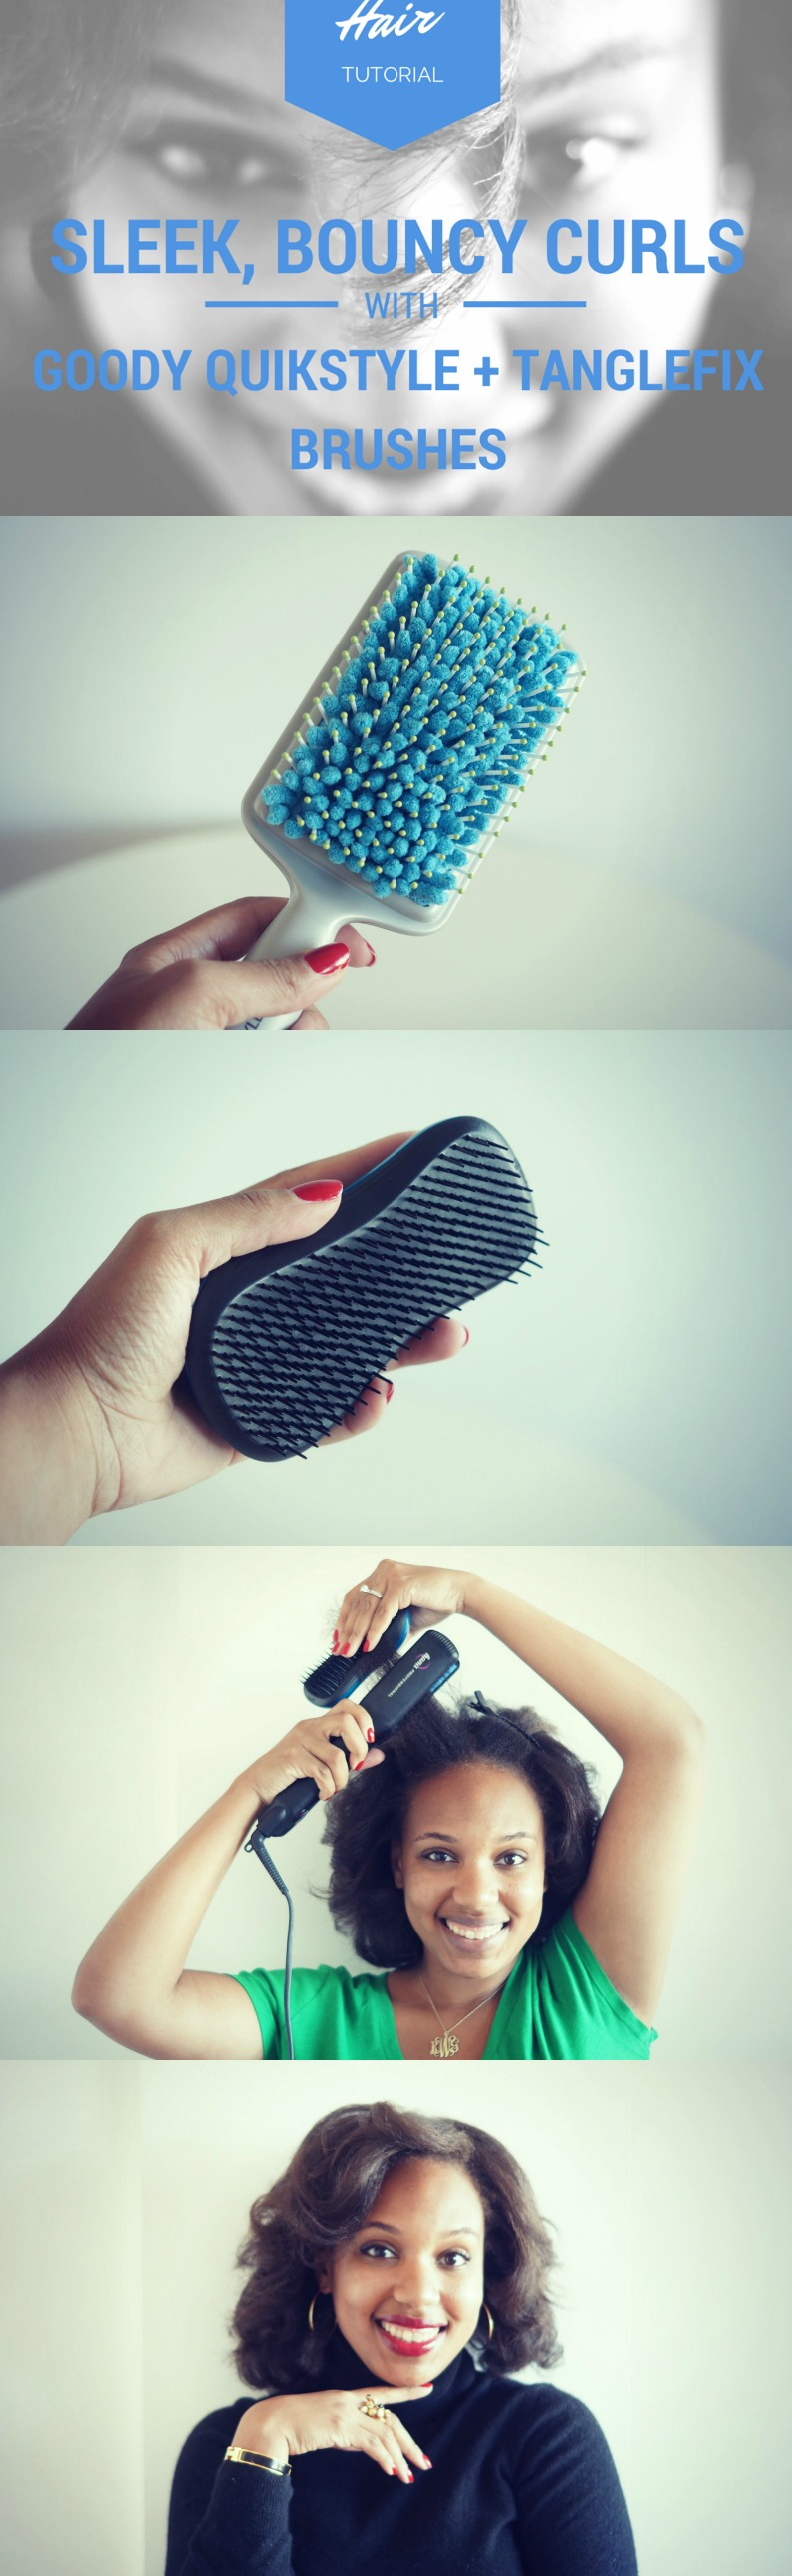 Silky, Bouncy Flat Iron Tutorial for Natural Hair #GoodyGorgeous #PMedia #ad